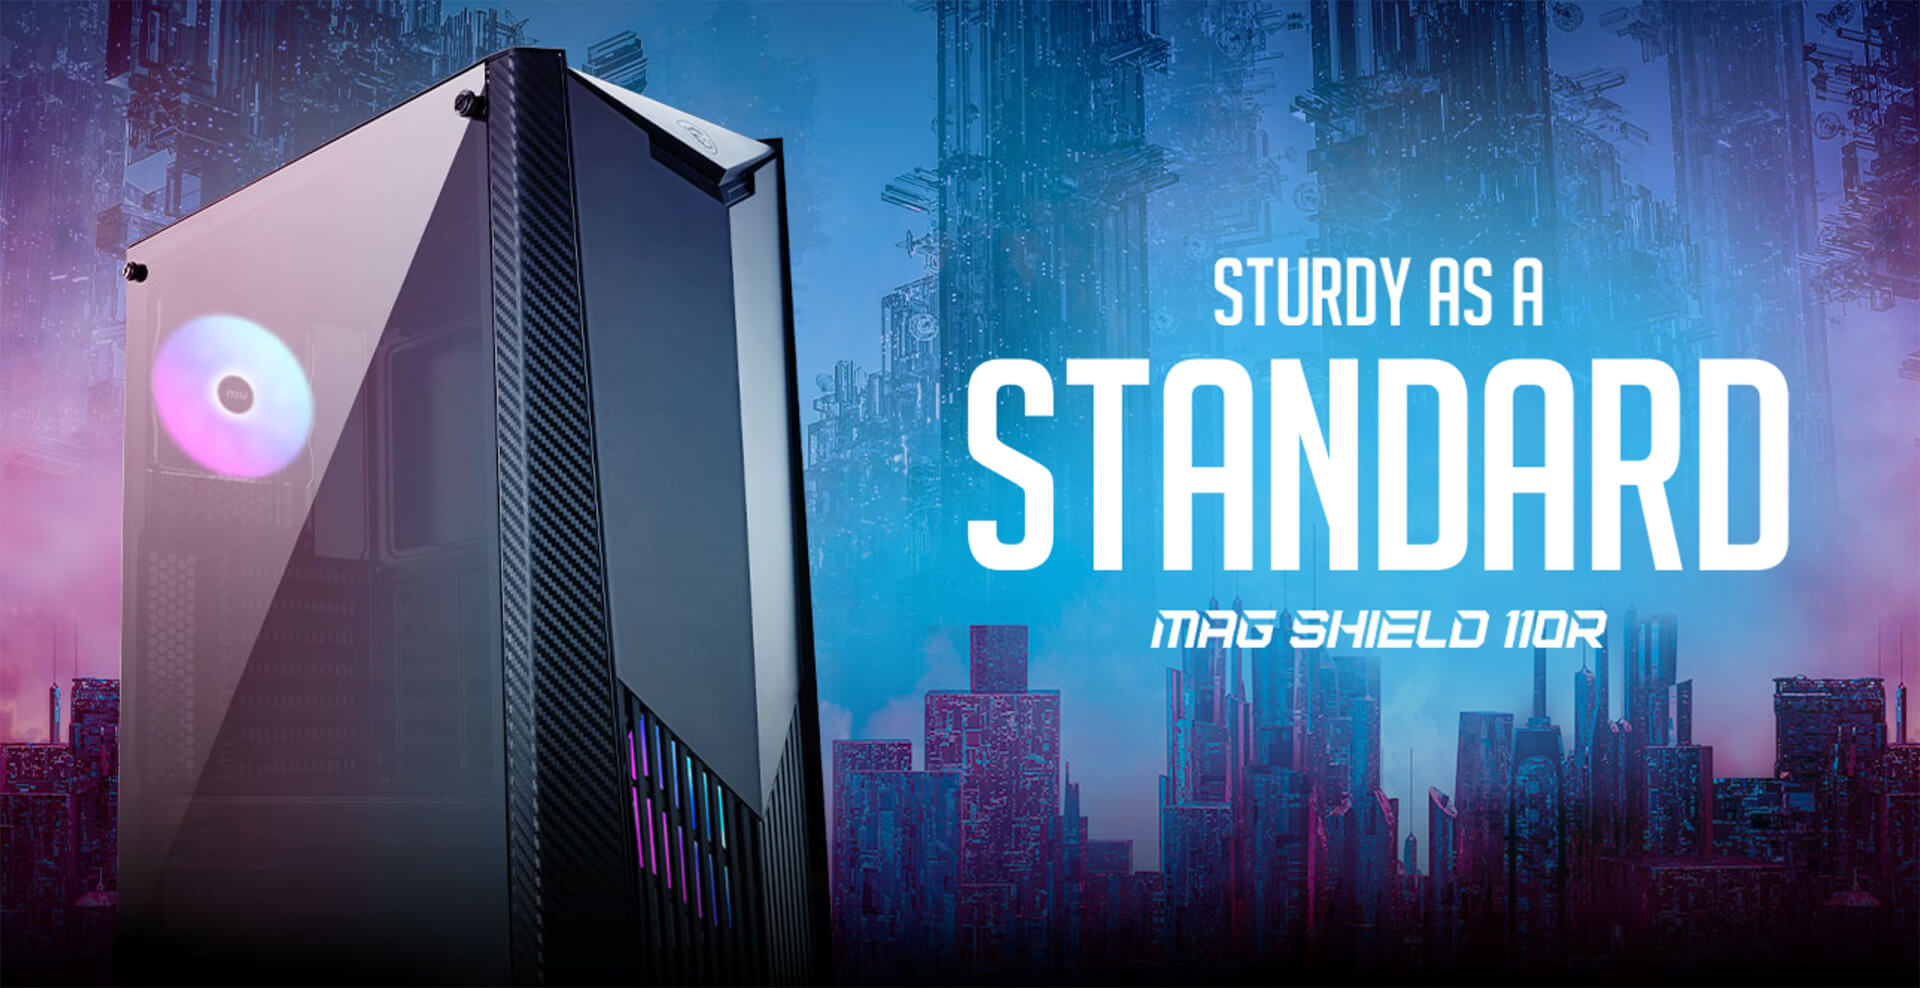 MSI MAG SHIELD 110R - 3 FAN - Mid Tower Case